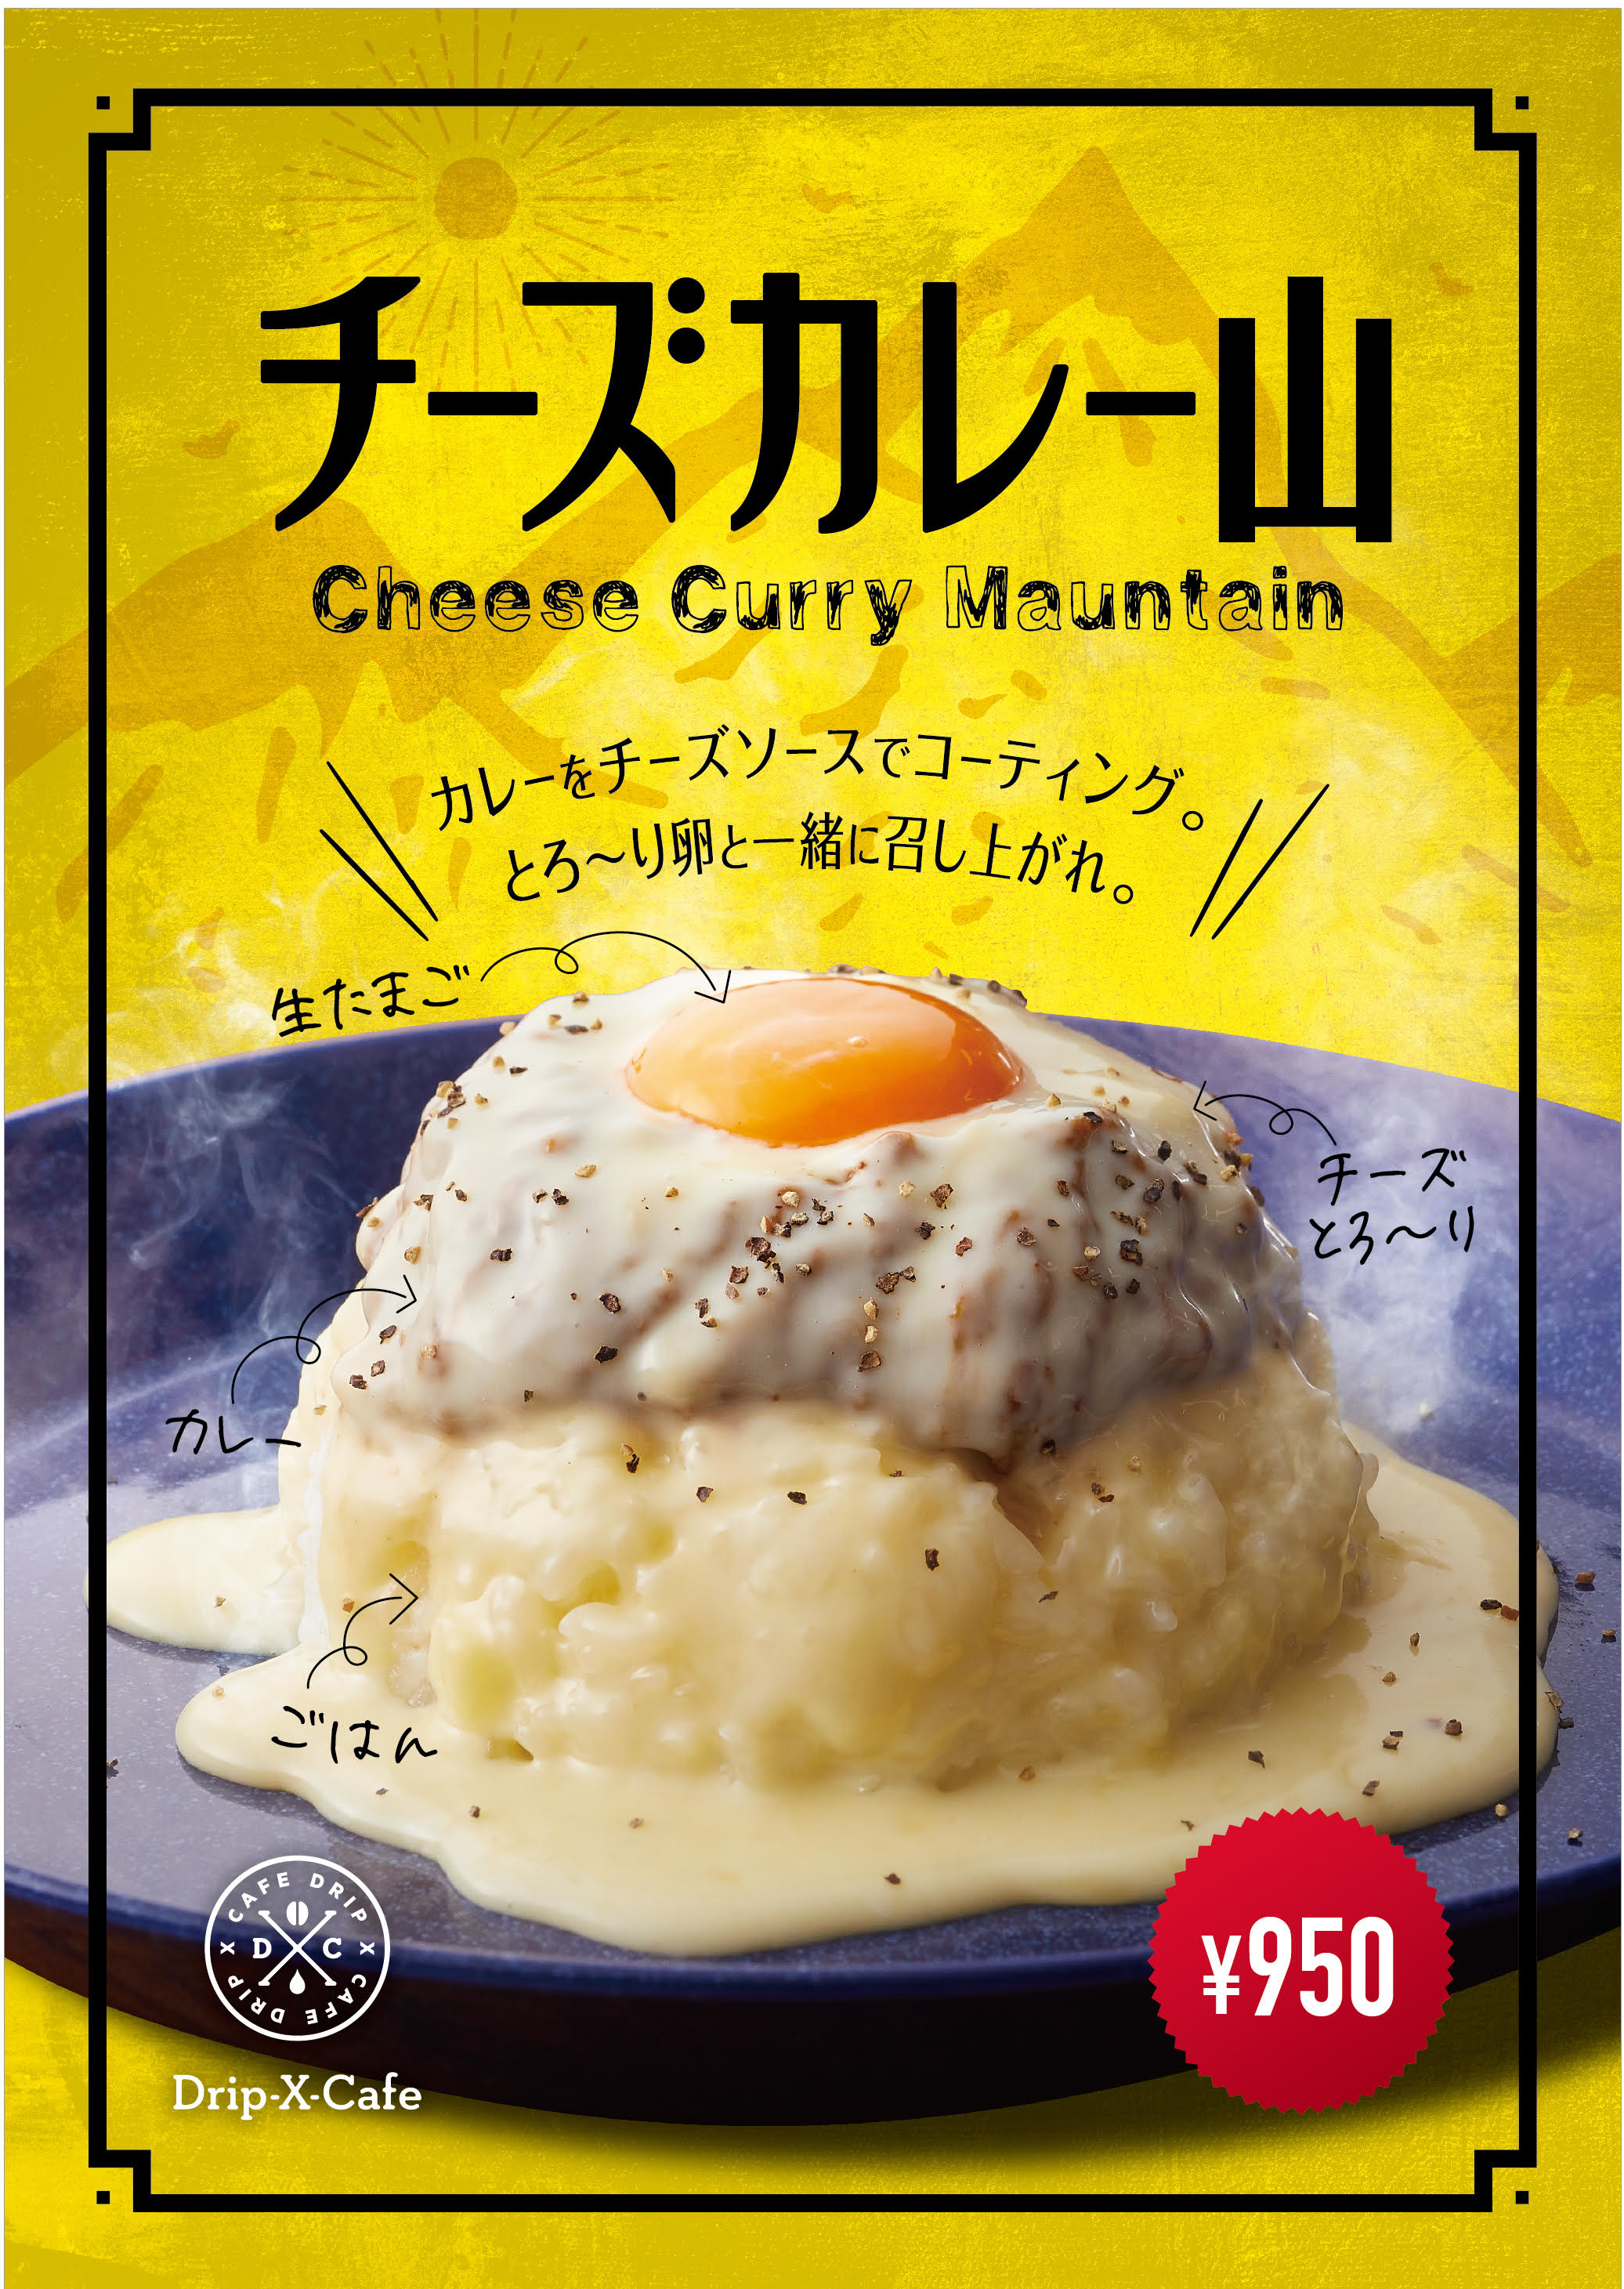 Drip,X,Cafeエキマルシェ新大阪店 新商品「チーズカレー山」のご案内